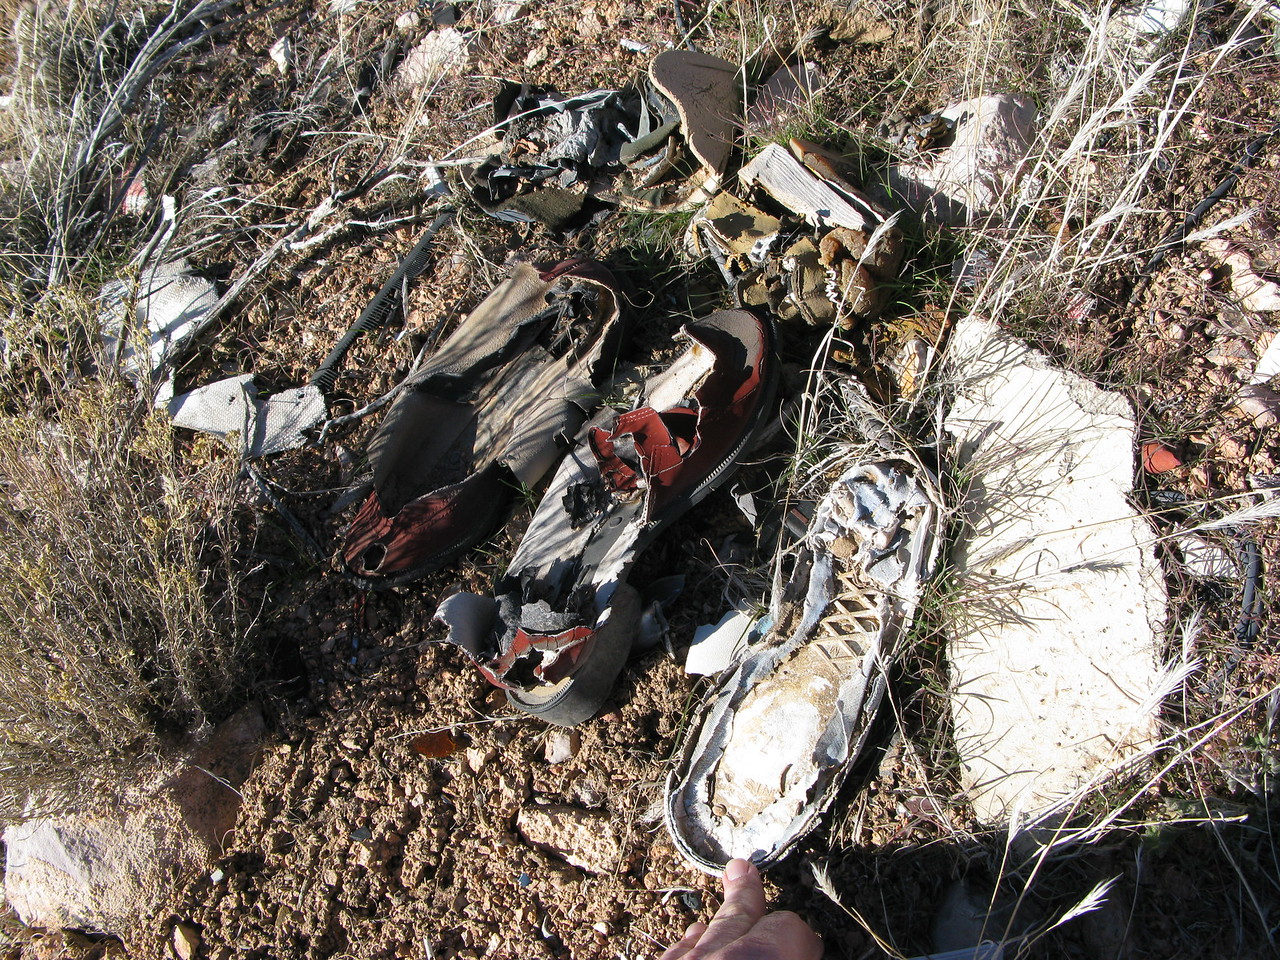 The shoes, exposed to over three decades of weather show signs of deterioration. It won't be long and these clothing articles will be gone forever.